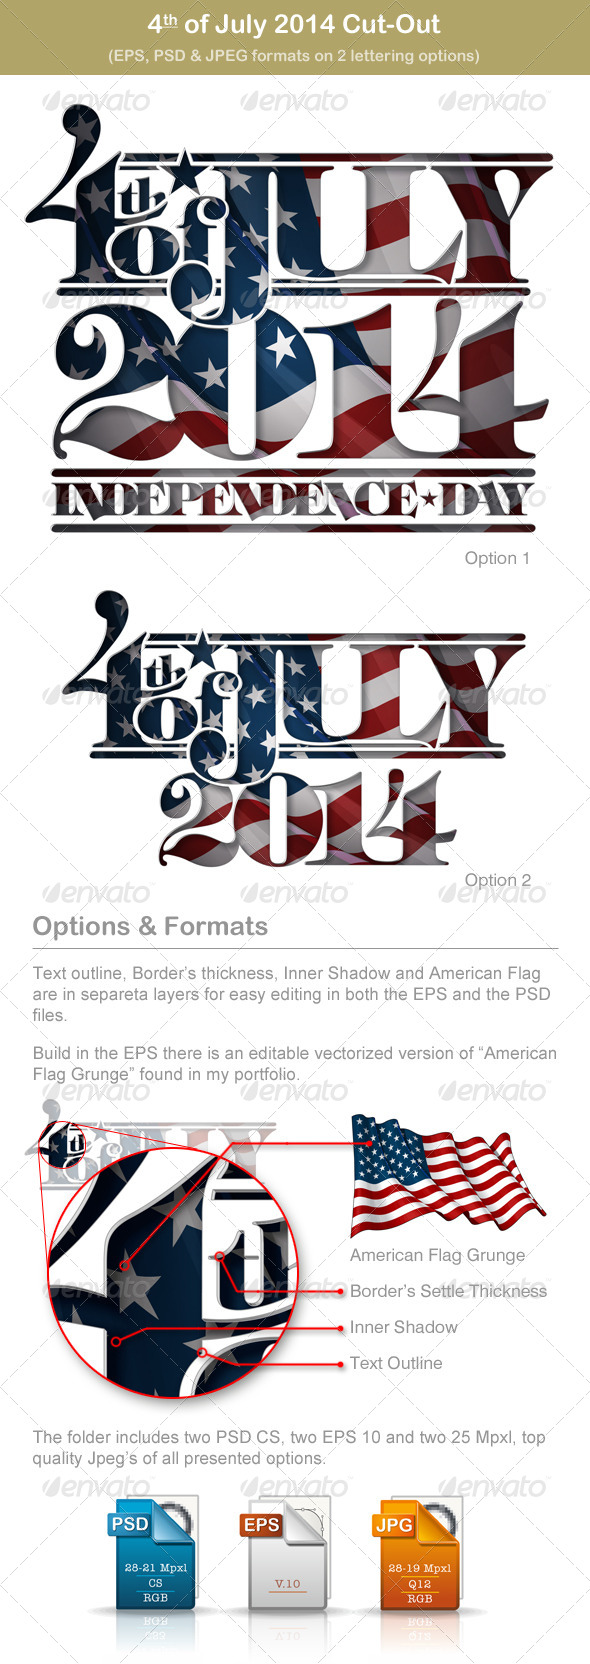 4th of July 2014 Independence Day Cut-Out